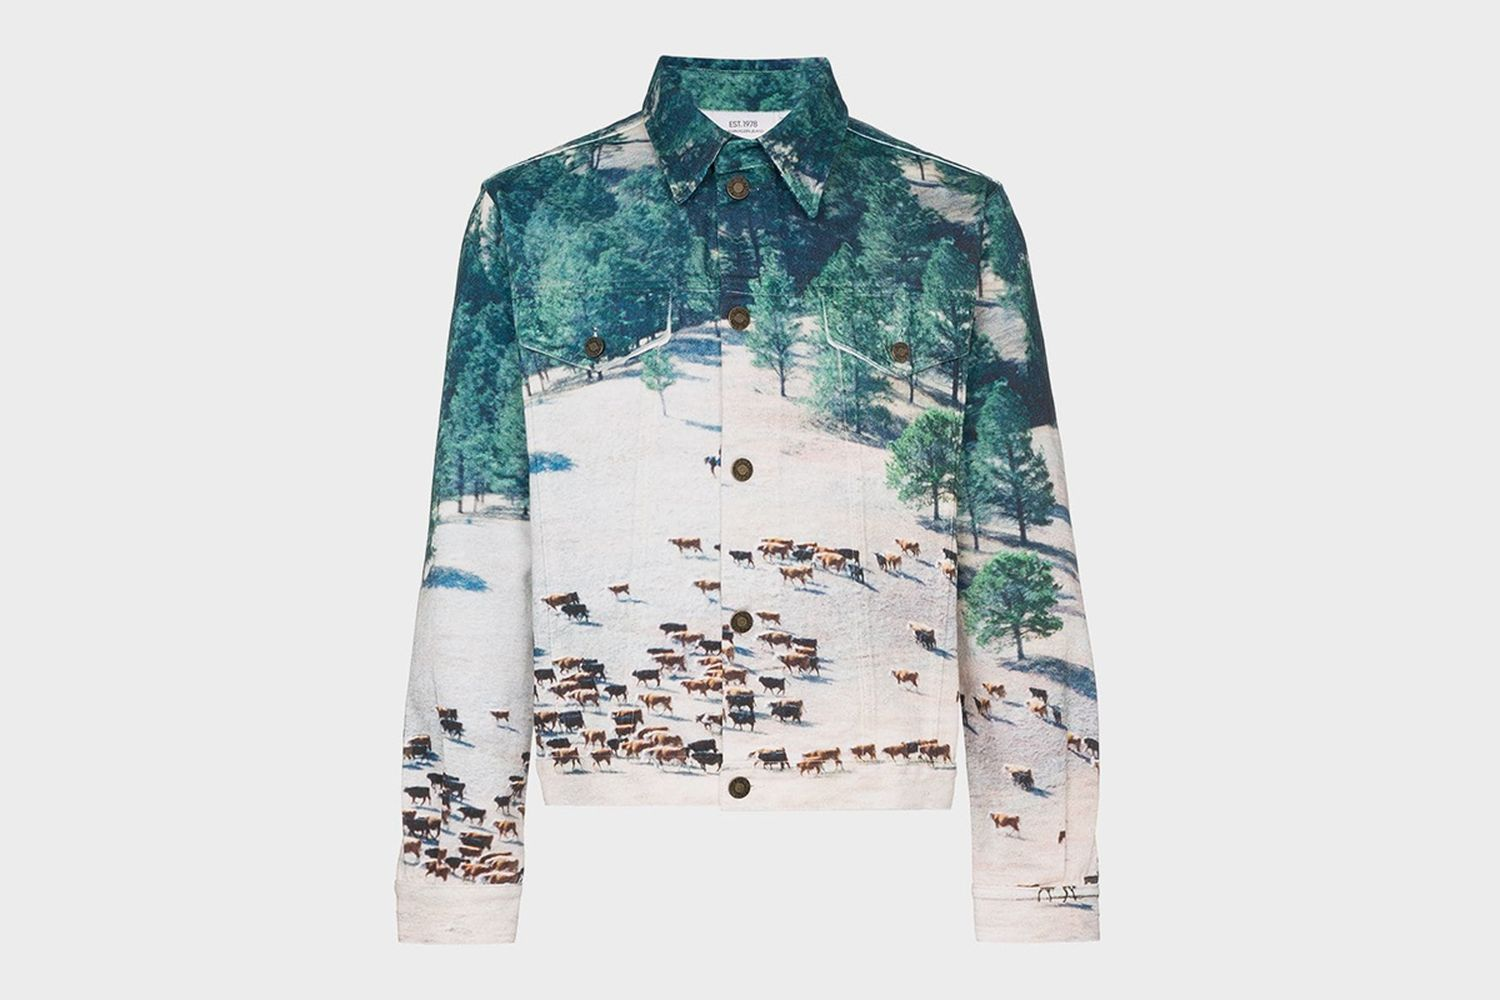 Printed Landscape Scene Denim Jacket